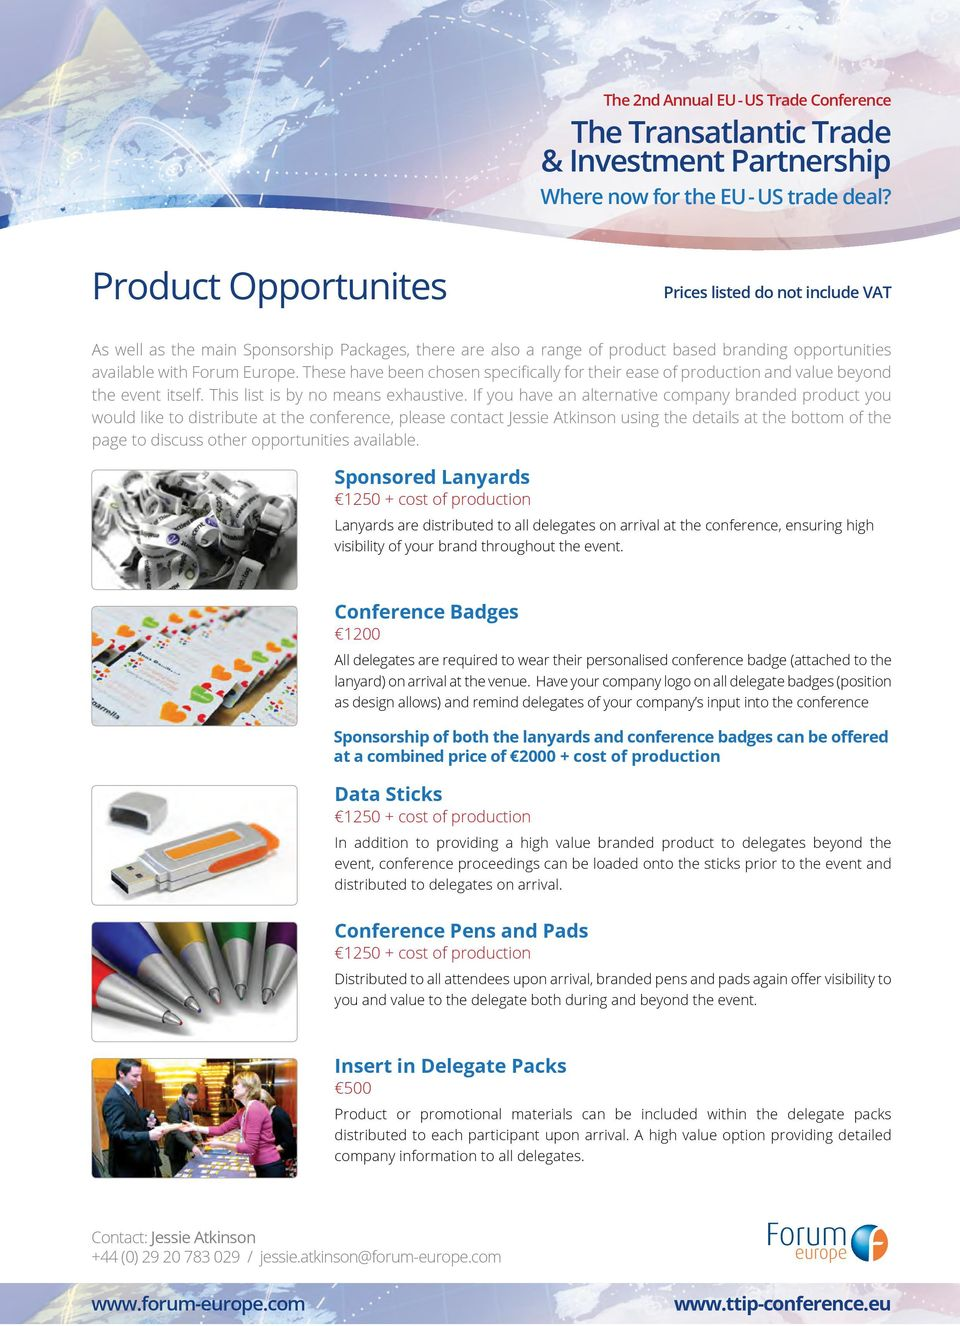 If you have an alternative company branded product you would like to distribute at the conference, please contact Jessie Atkinson using the details at the bottom of the page to discuss other